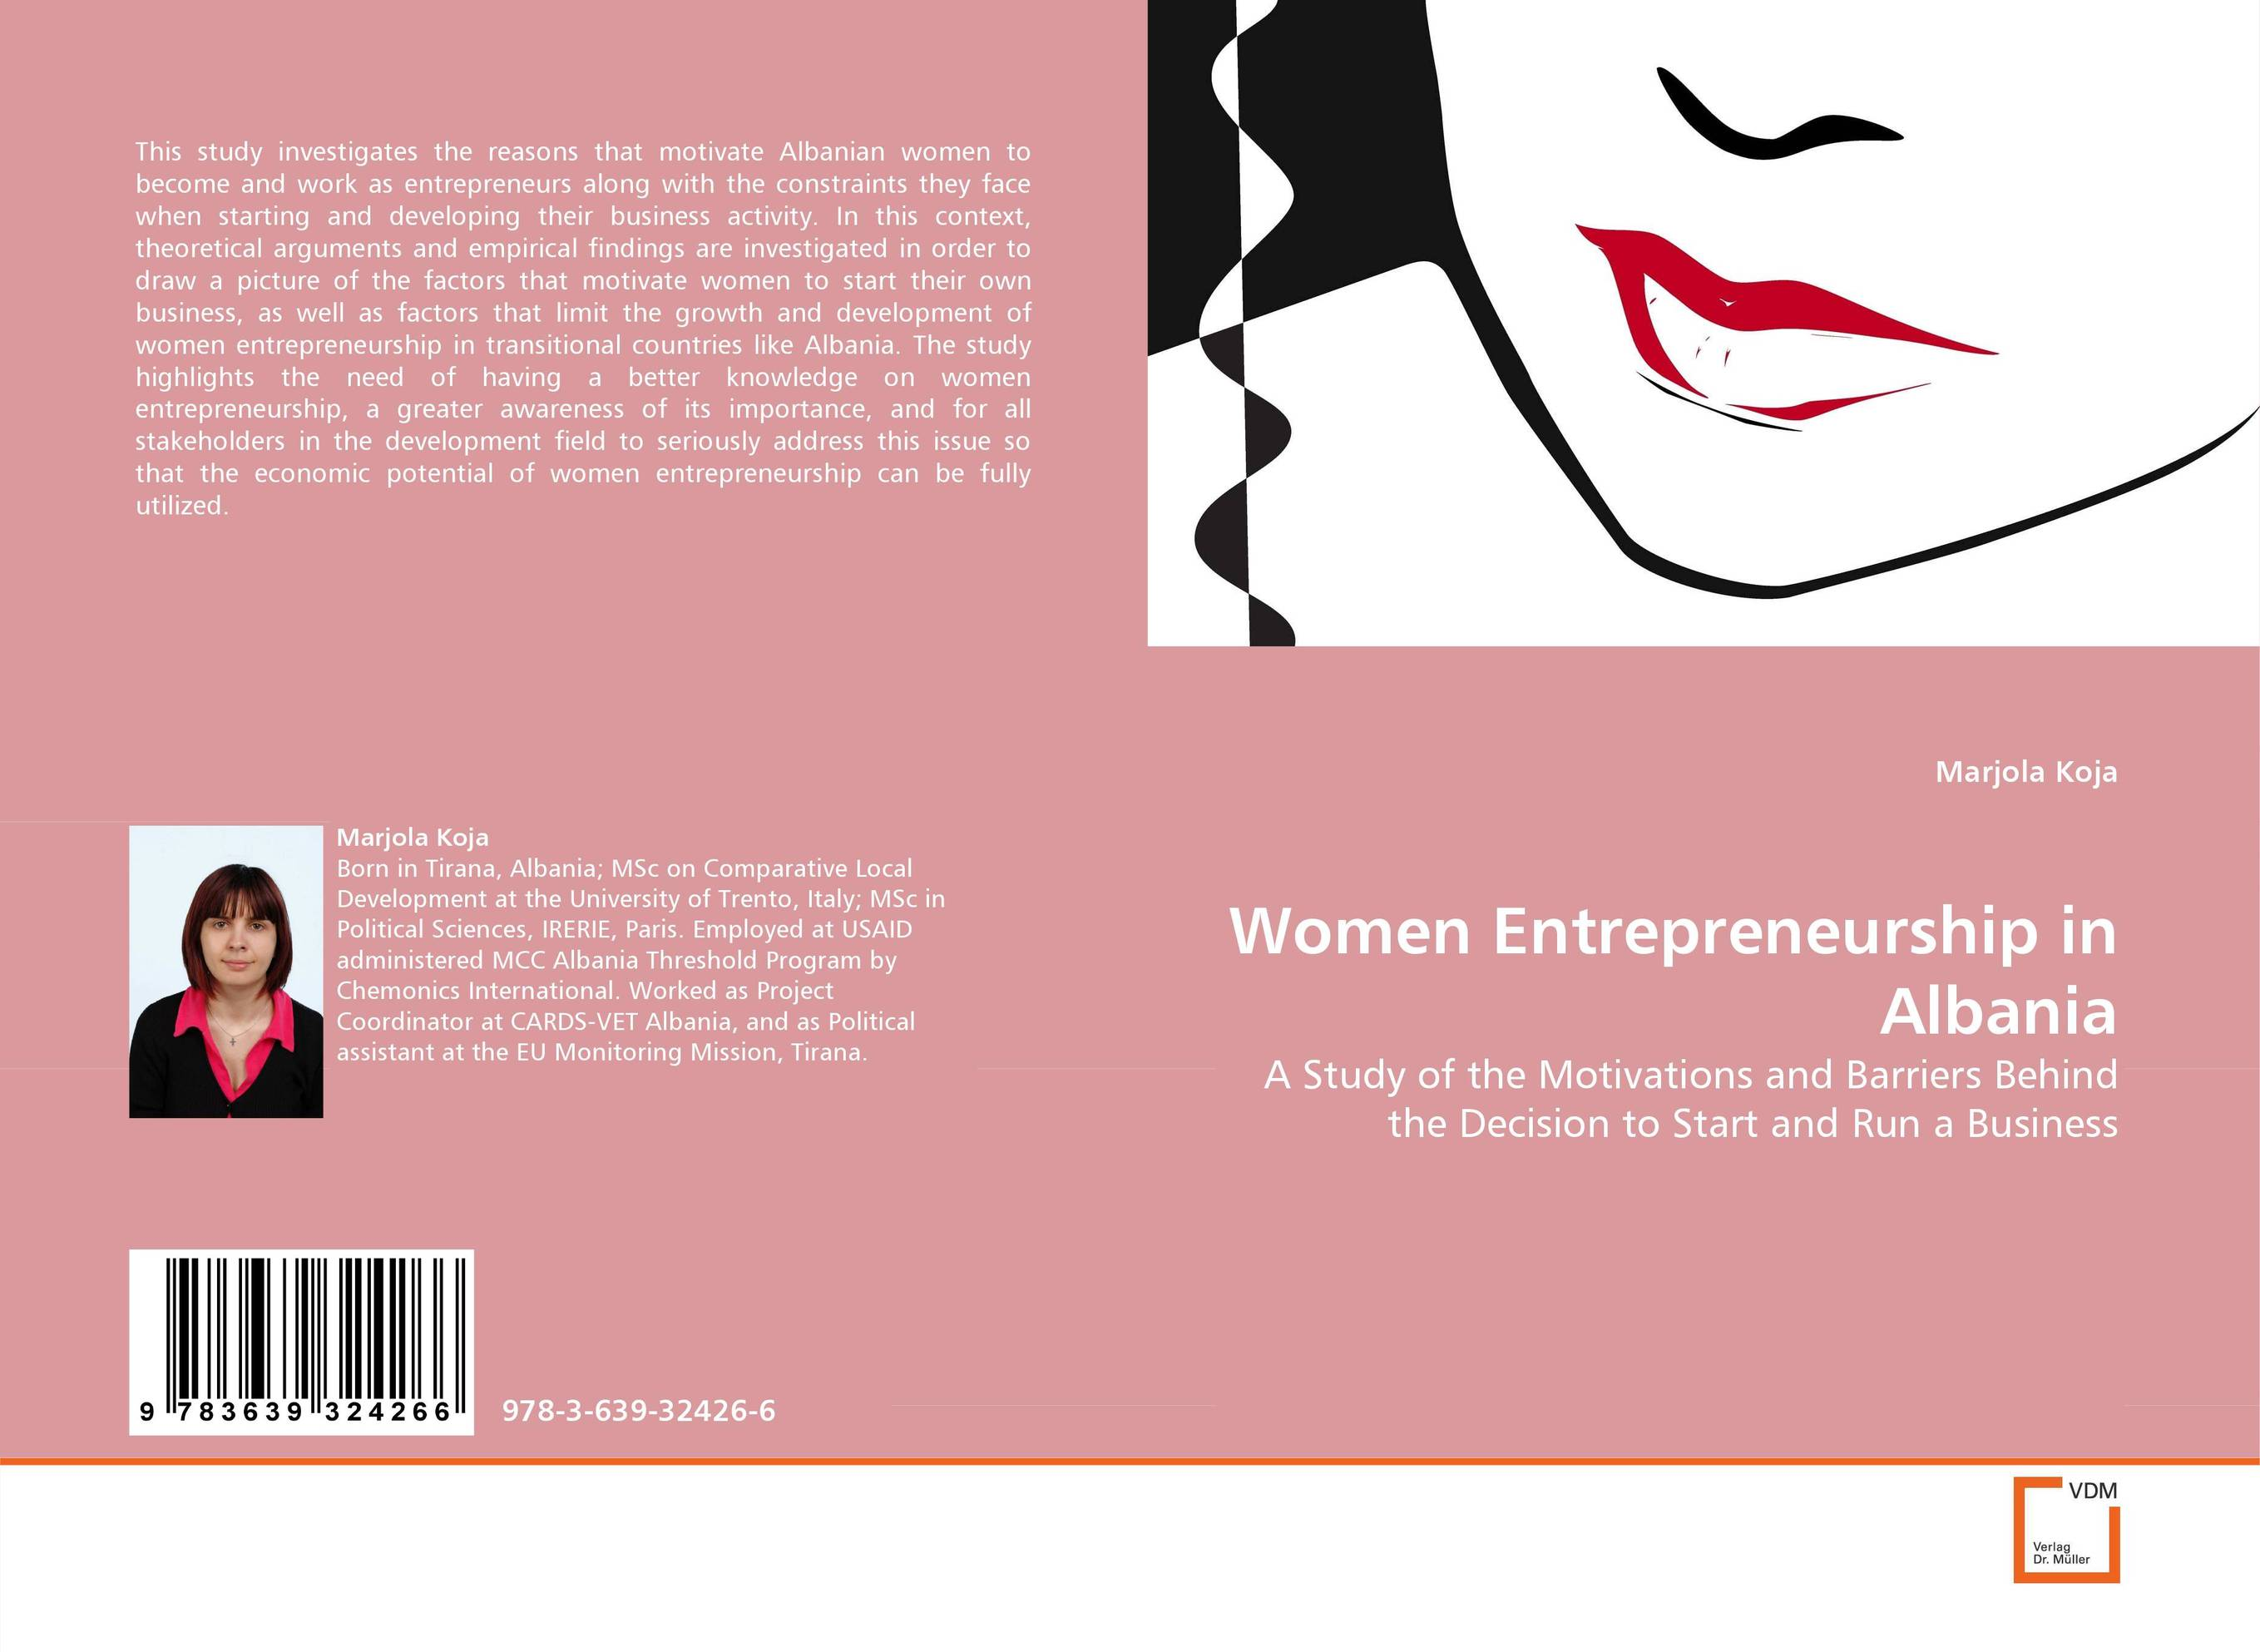 Women Entrepreneurship in Albania n giusti diffuse entrepreneurship and the very heart of made in italy for fashion and luxury goods